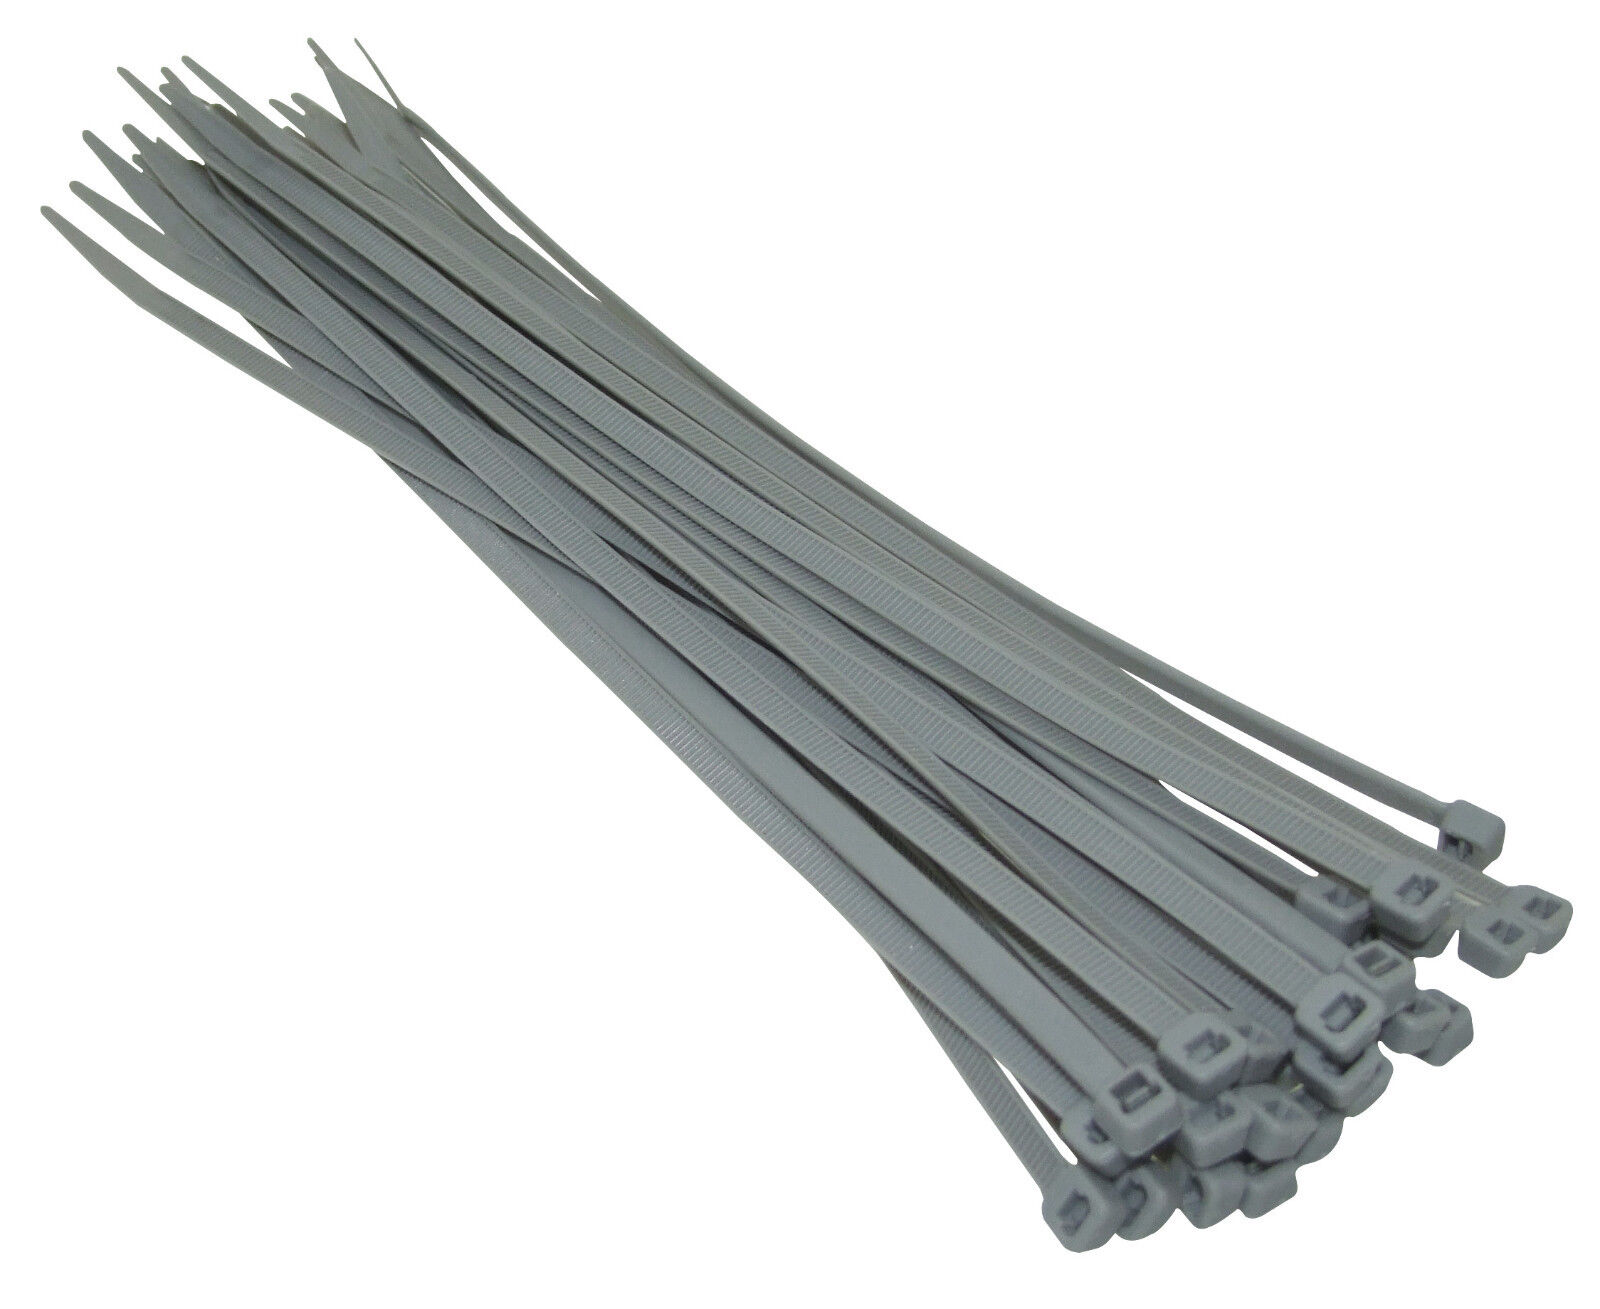 40b67251d551 100, SILVER GREY 2.5mm WIDE x 100mm LENGTH - HEAVY DUTY NYLON CABLE ...